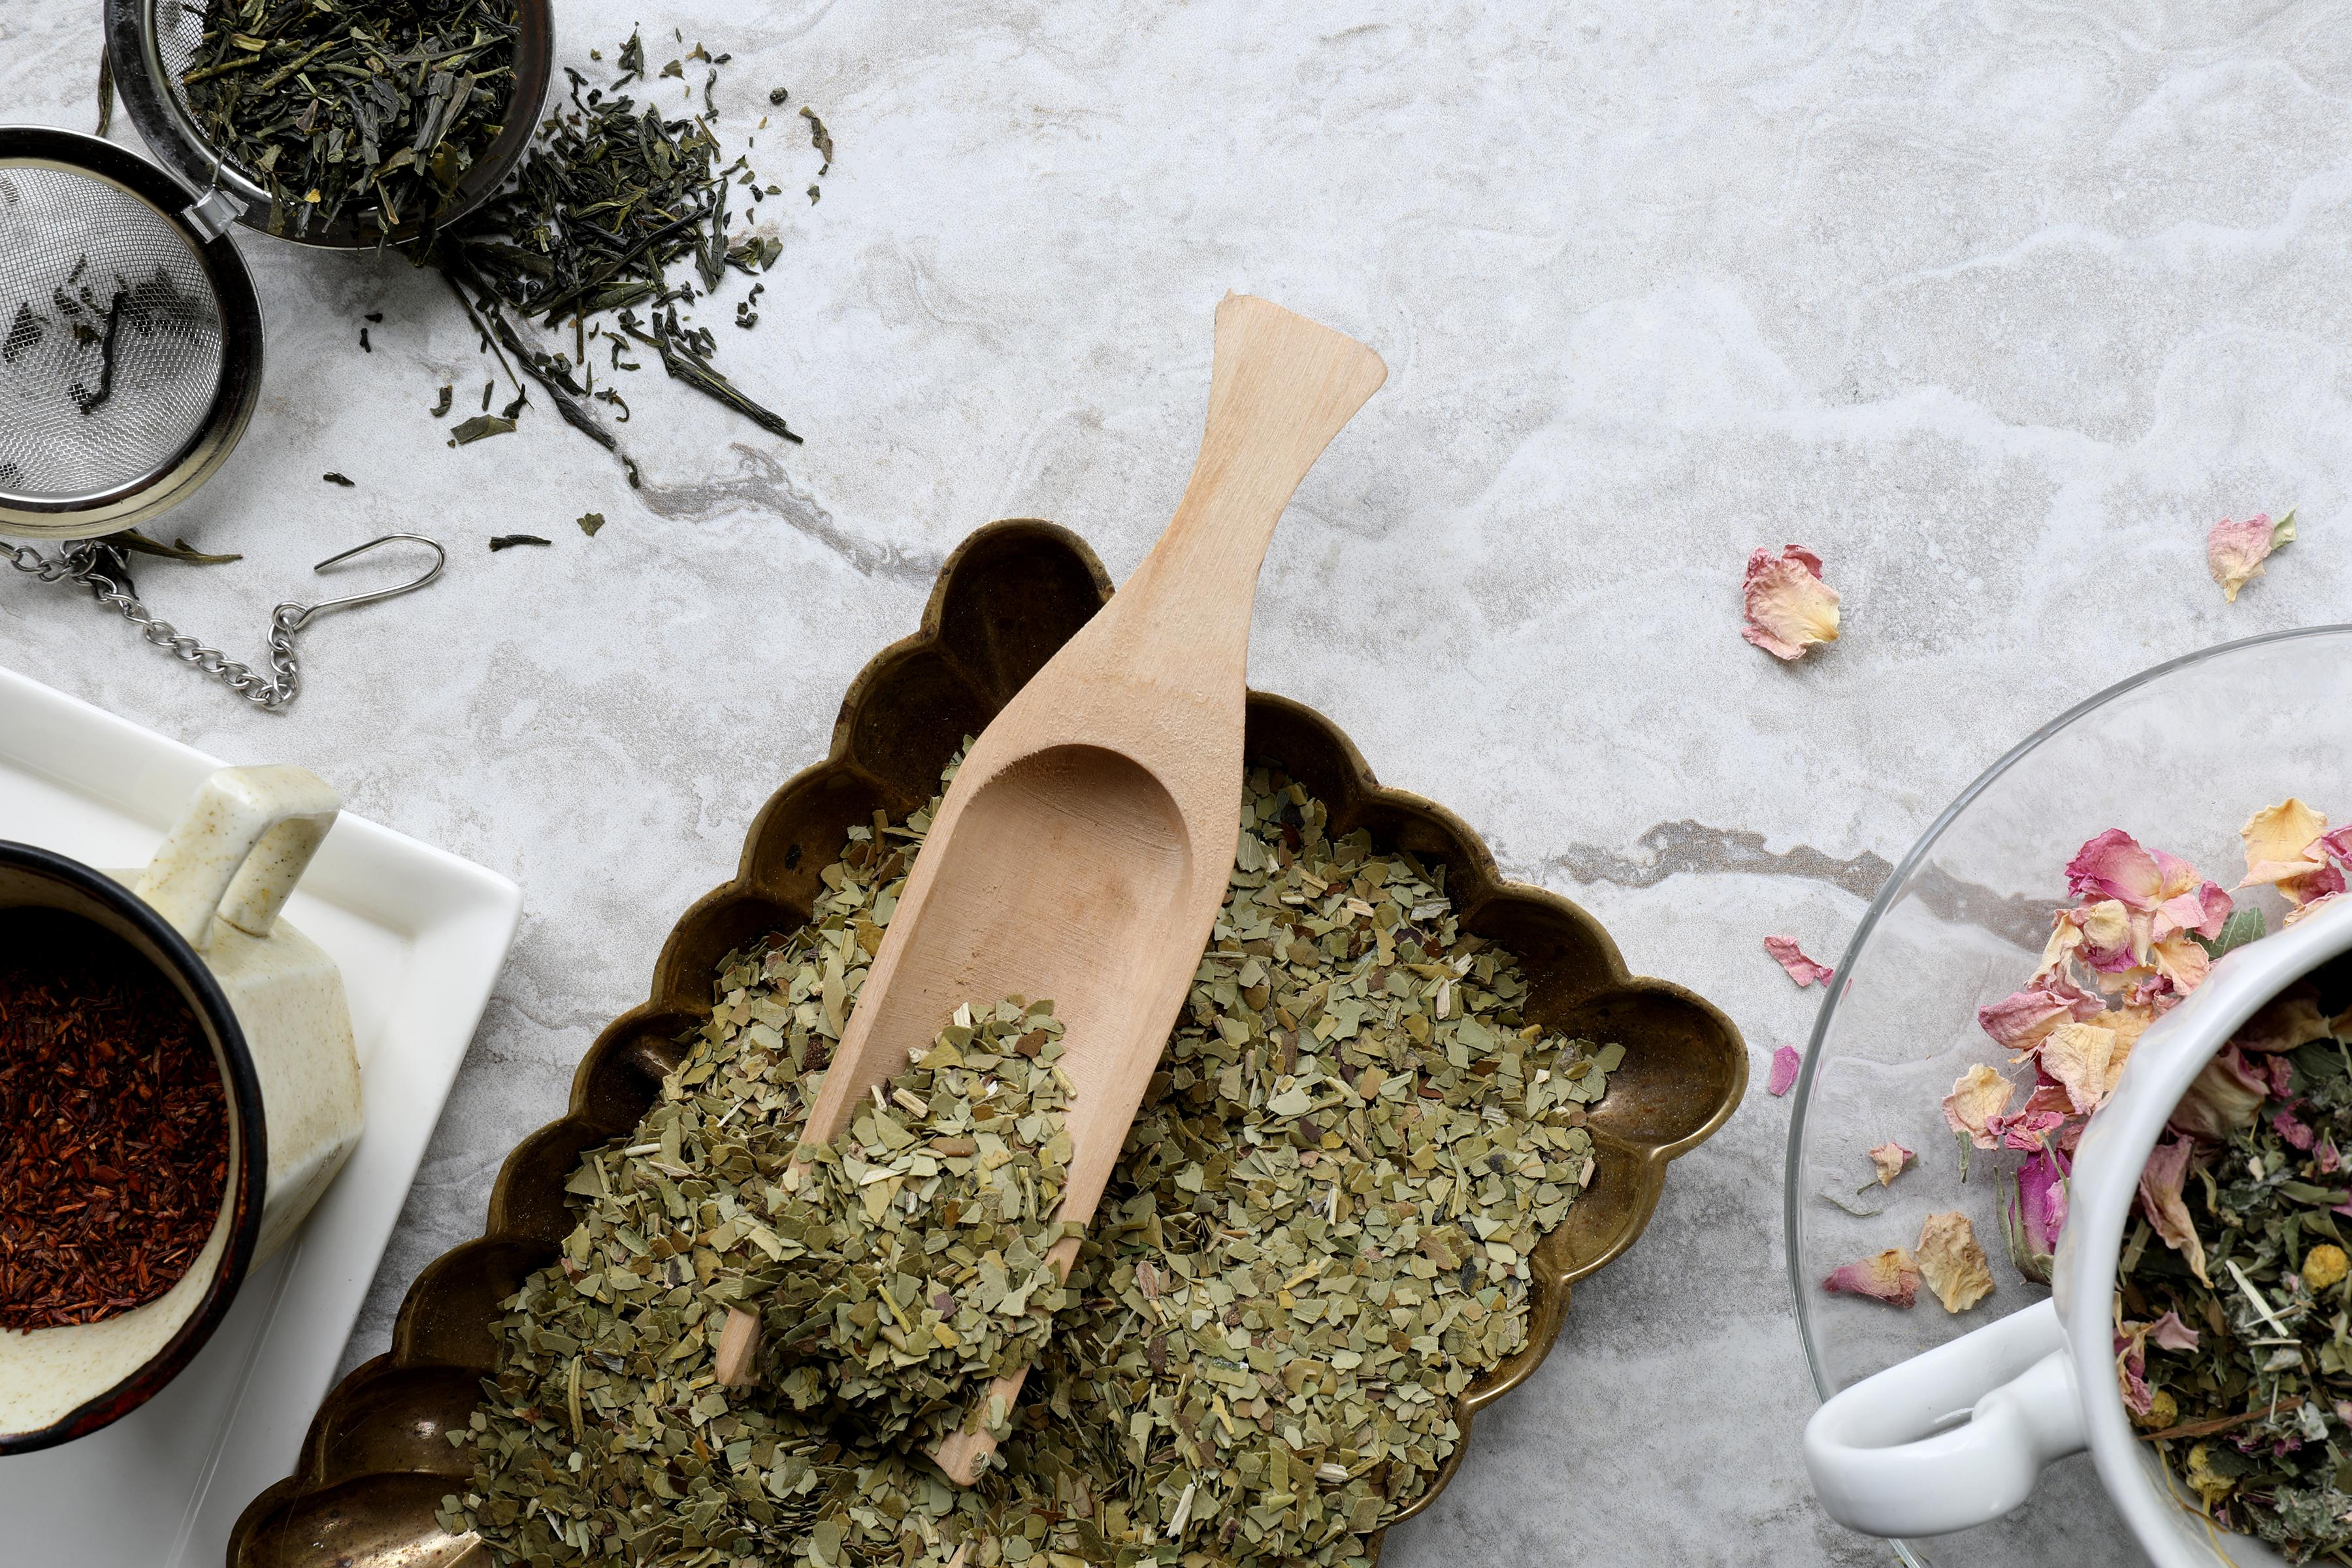 Wooden tea spoon in bowl filled with loose-leaf mate tea near brewing supplies